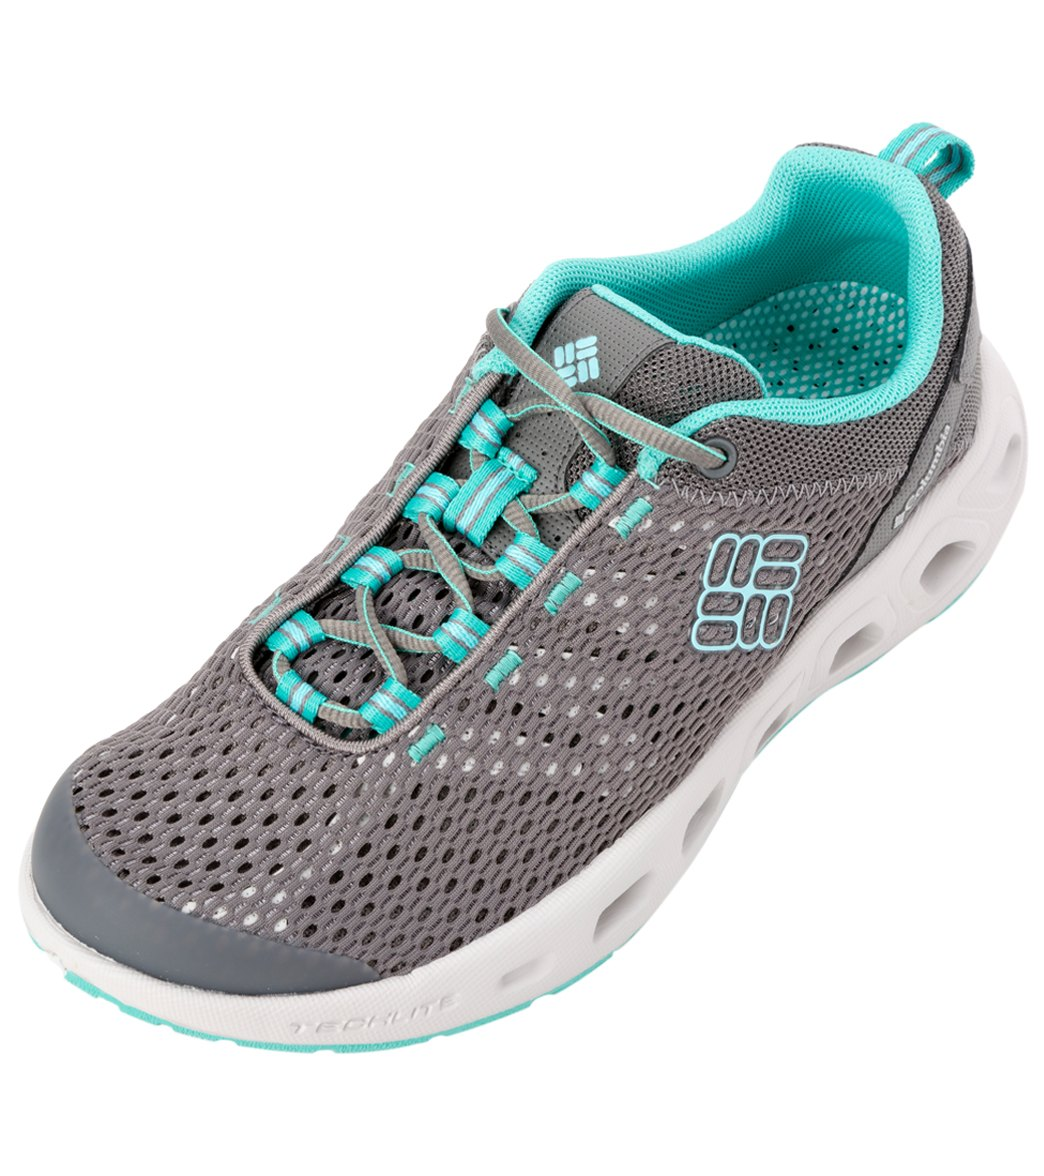 Columbia Women's Drainmaker III Water Shoes at SwimOutlet.com ...